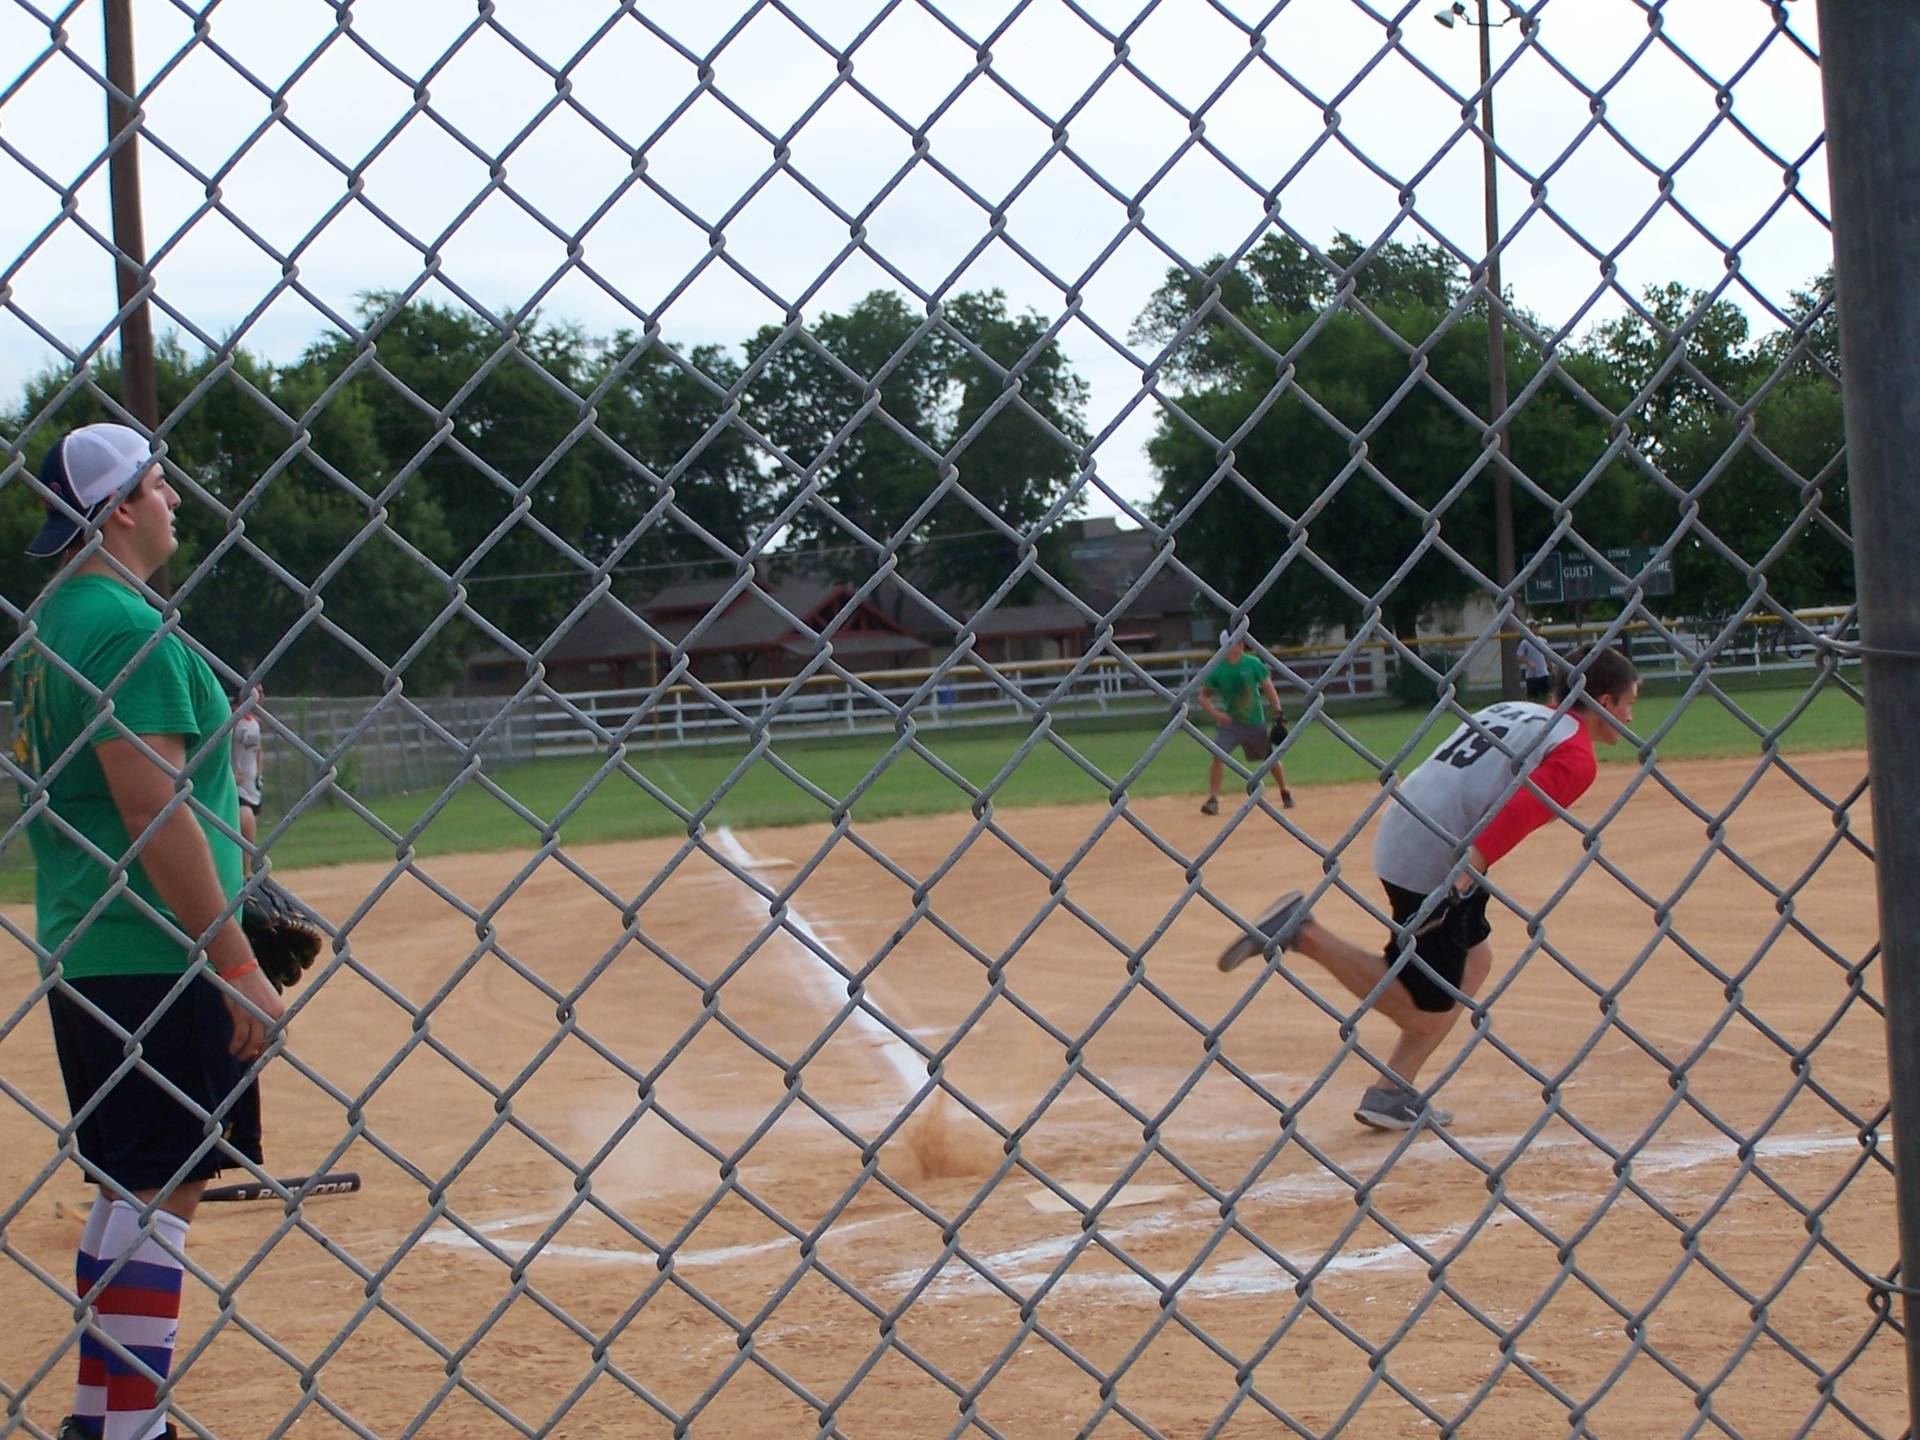 Pedernales takes it to first base